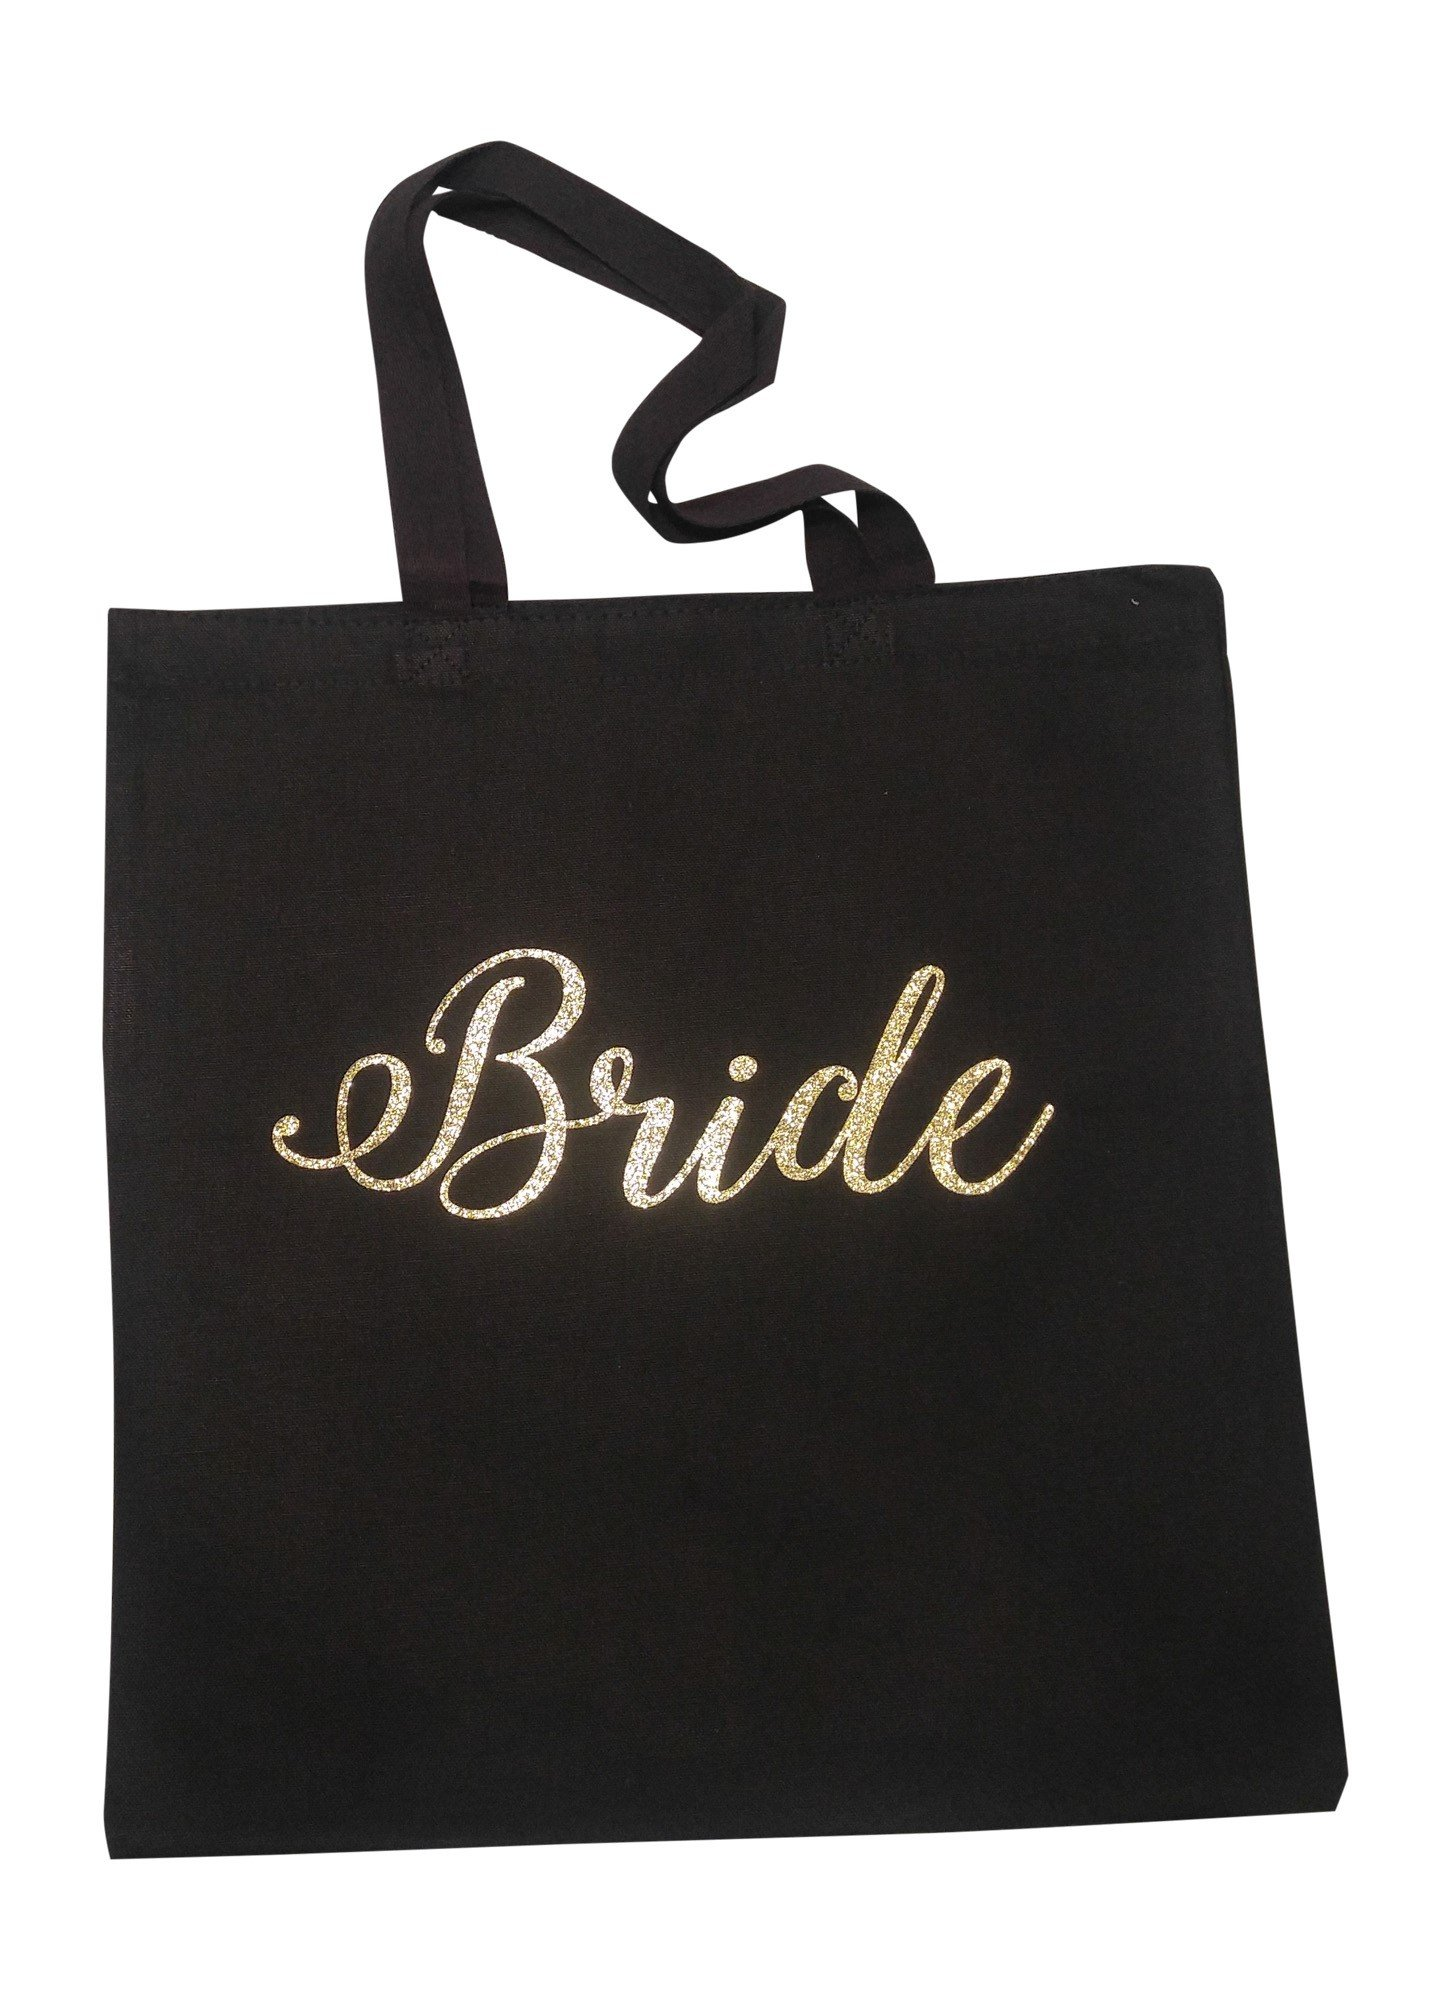 The Spoiled Office Wedding Party Bridal Tote Bag with Gold Lettering - Heavyweight, Large Canvas 15'' x 16'' (Bride in Black)